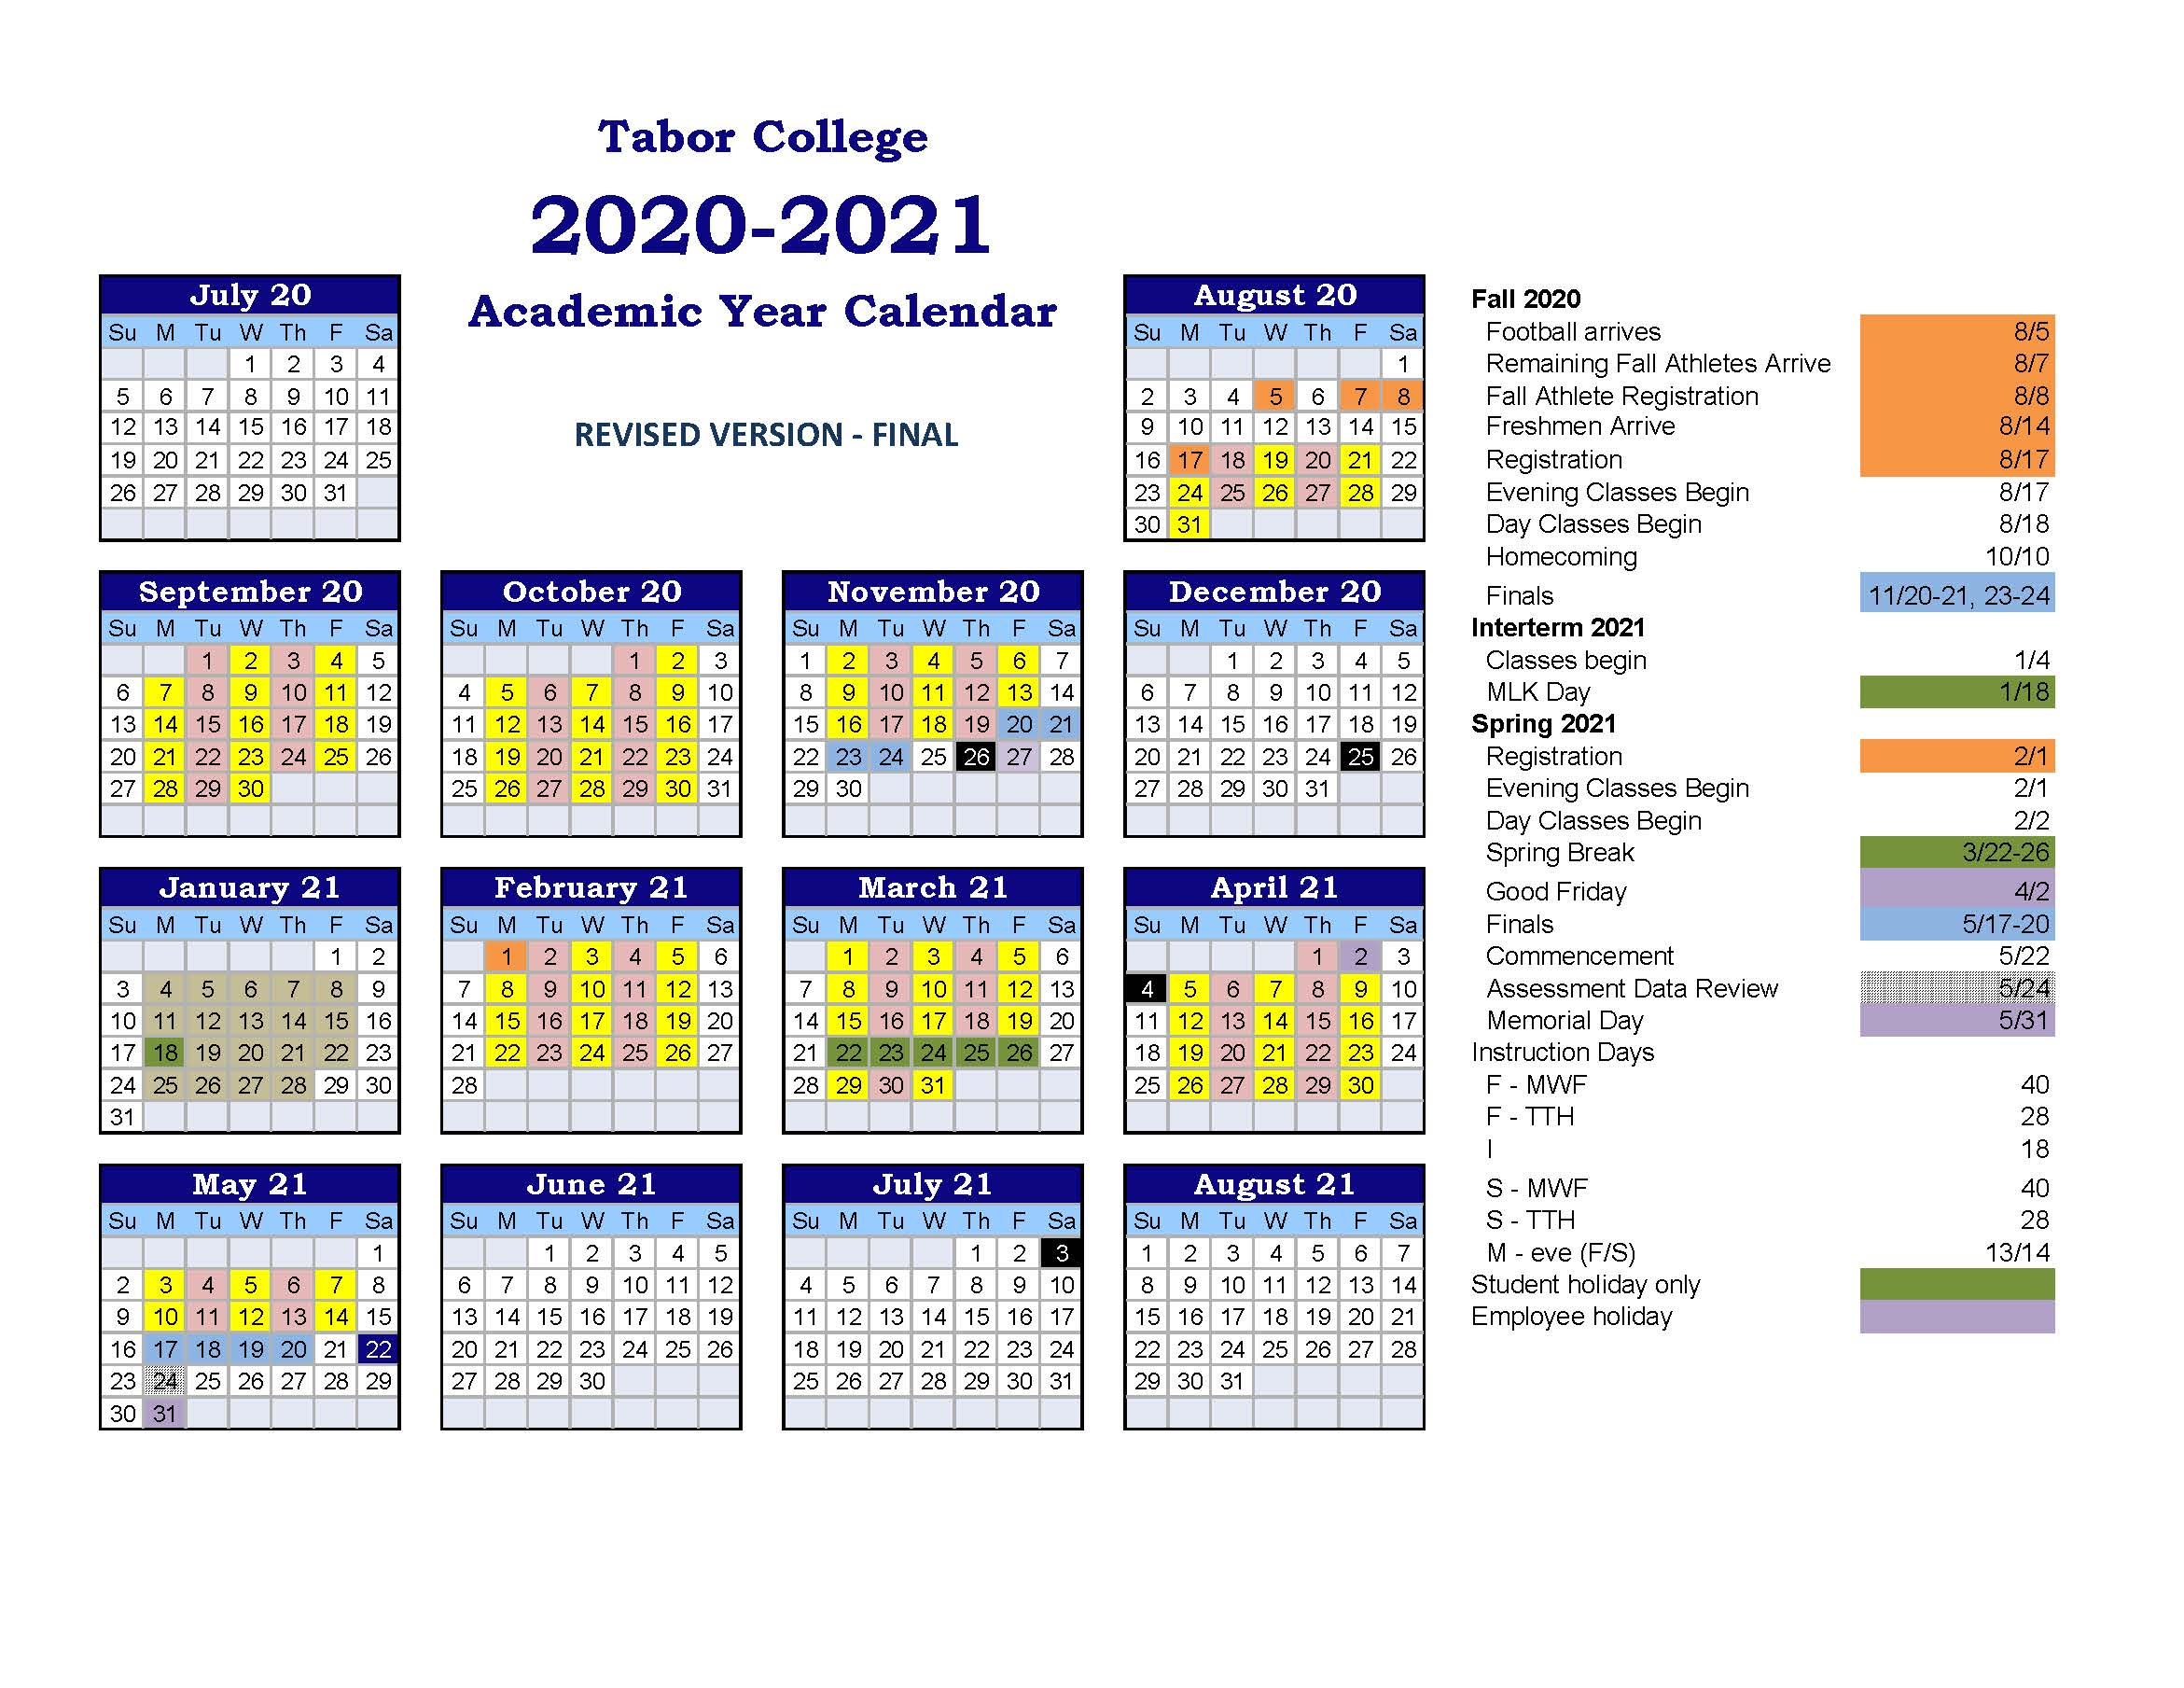 Tabor College Announces Fall Semester Adjusted Schedule ...